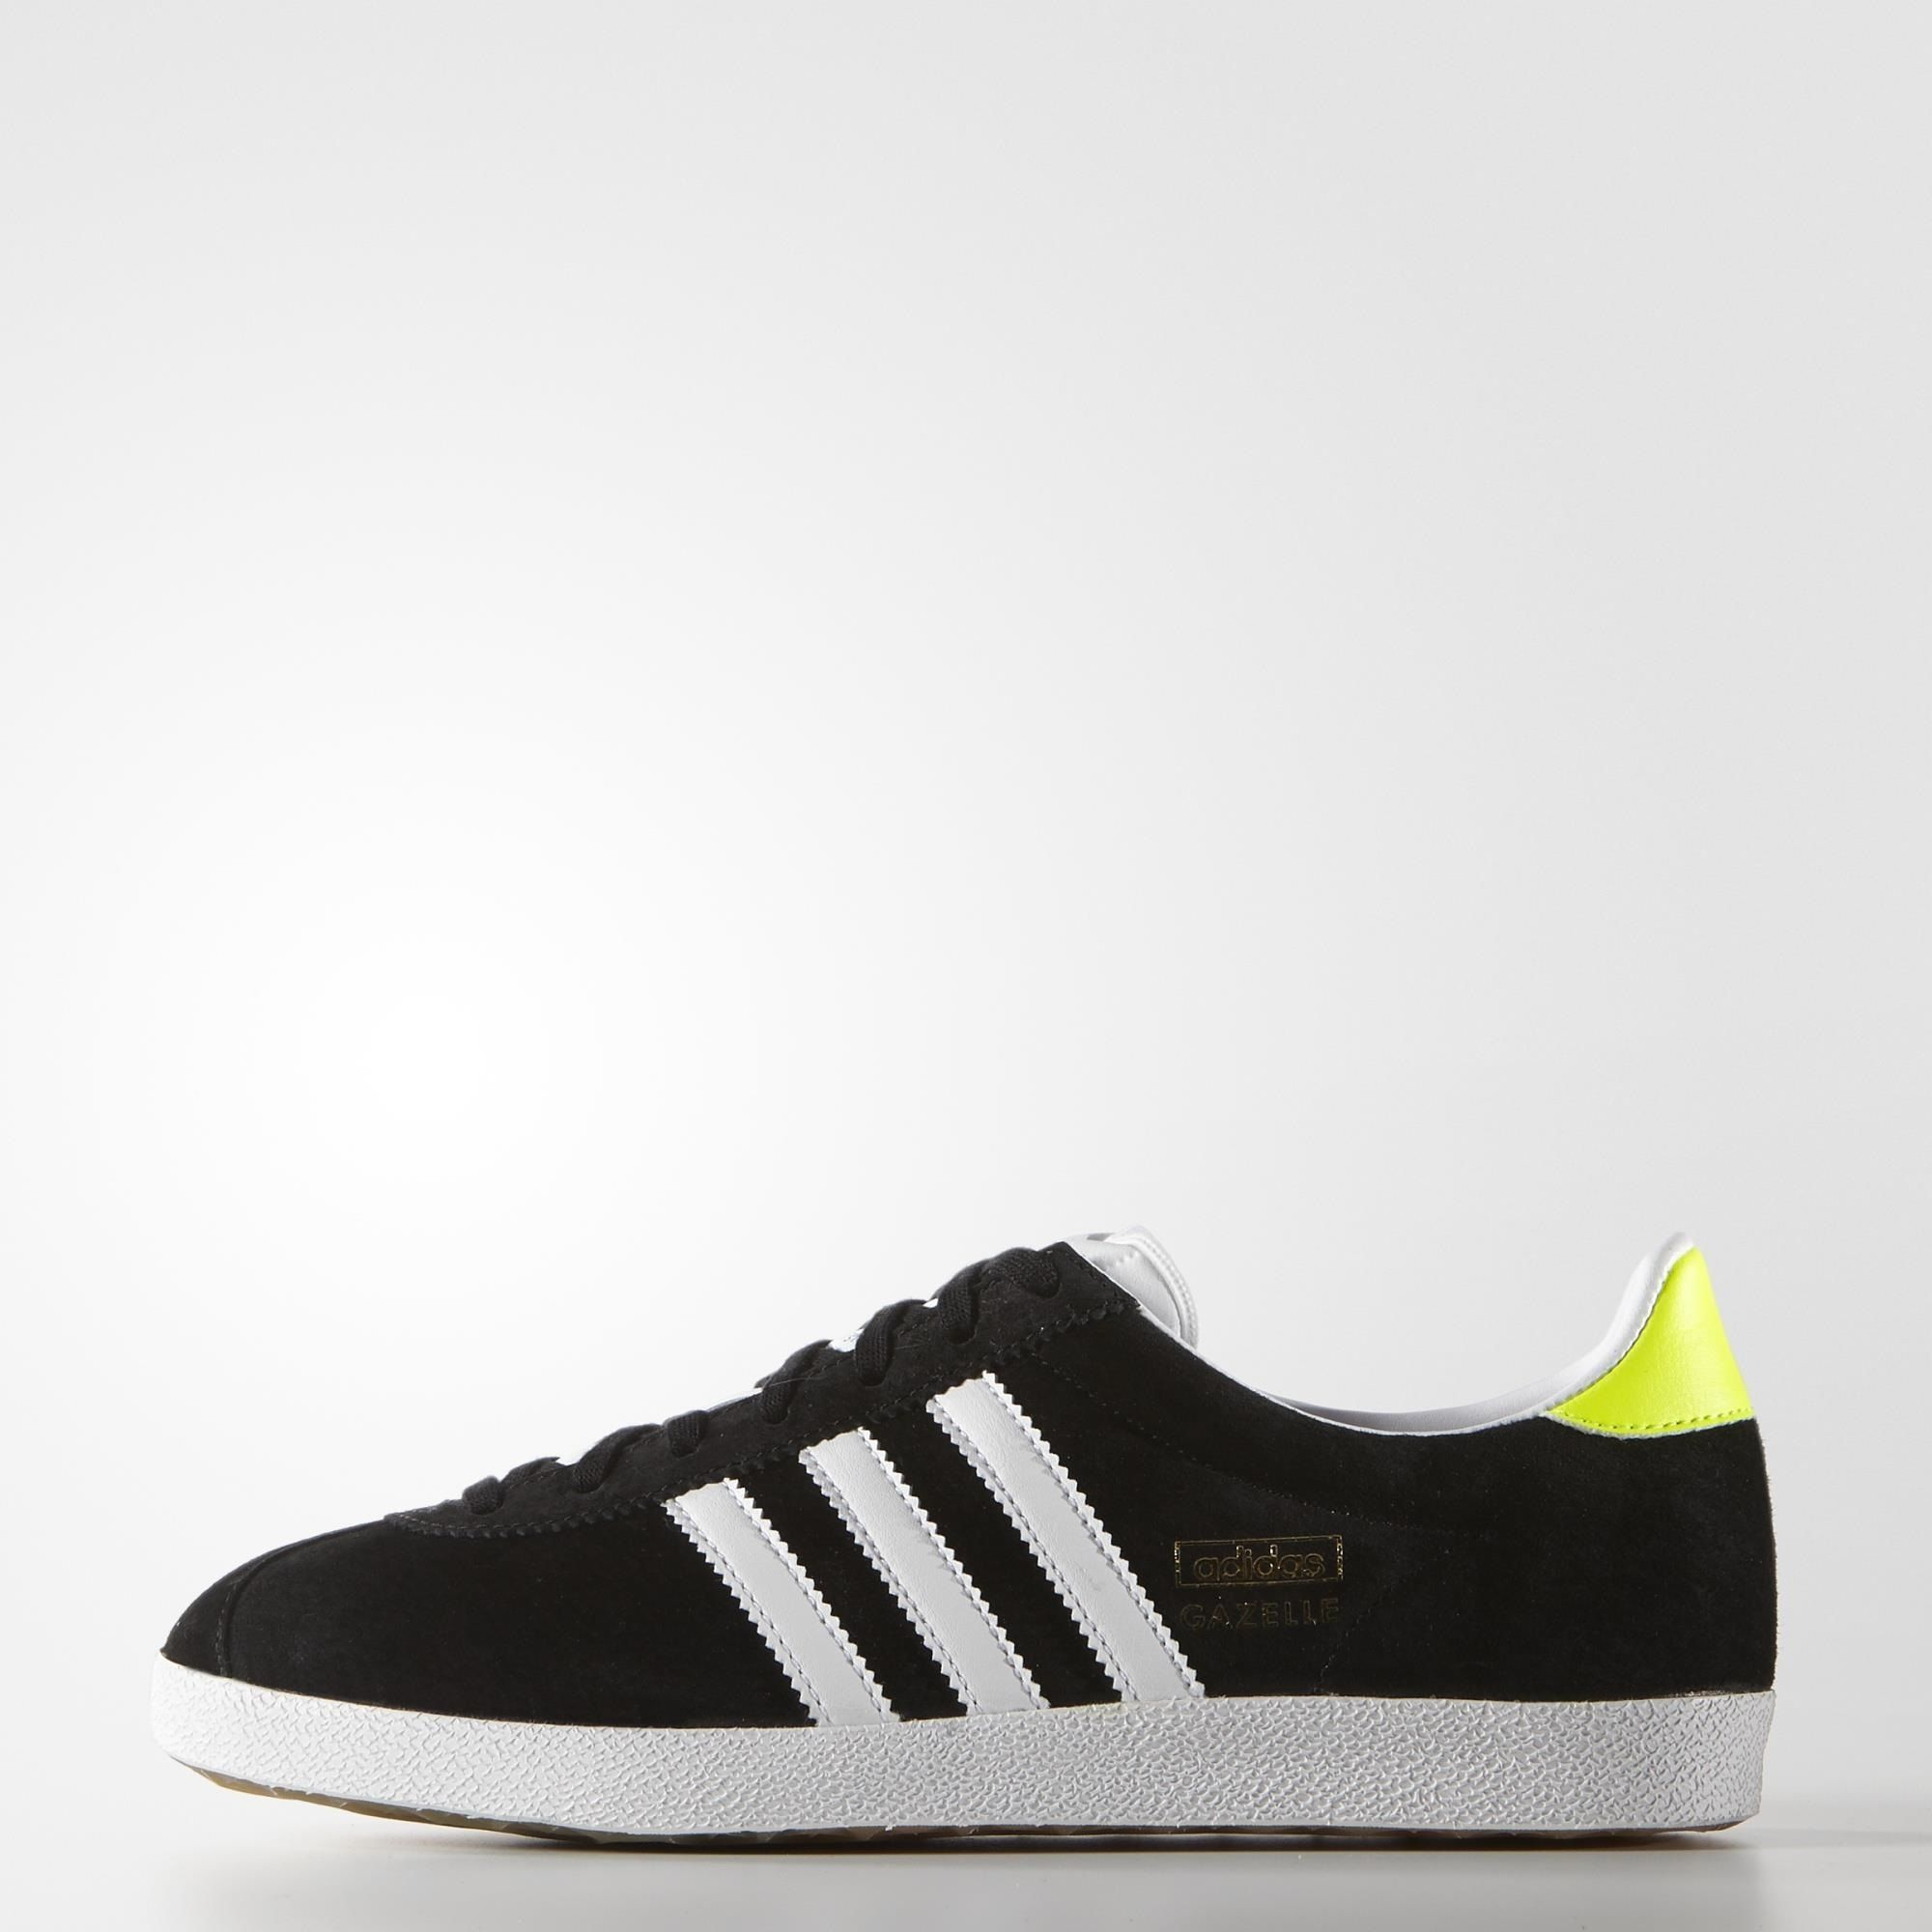 adidas gazelle solid grey solar pink adidas online shop uk contact number